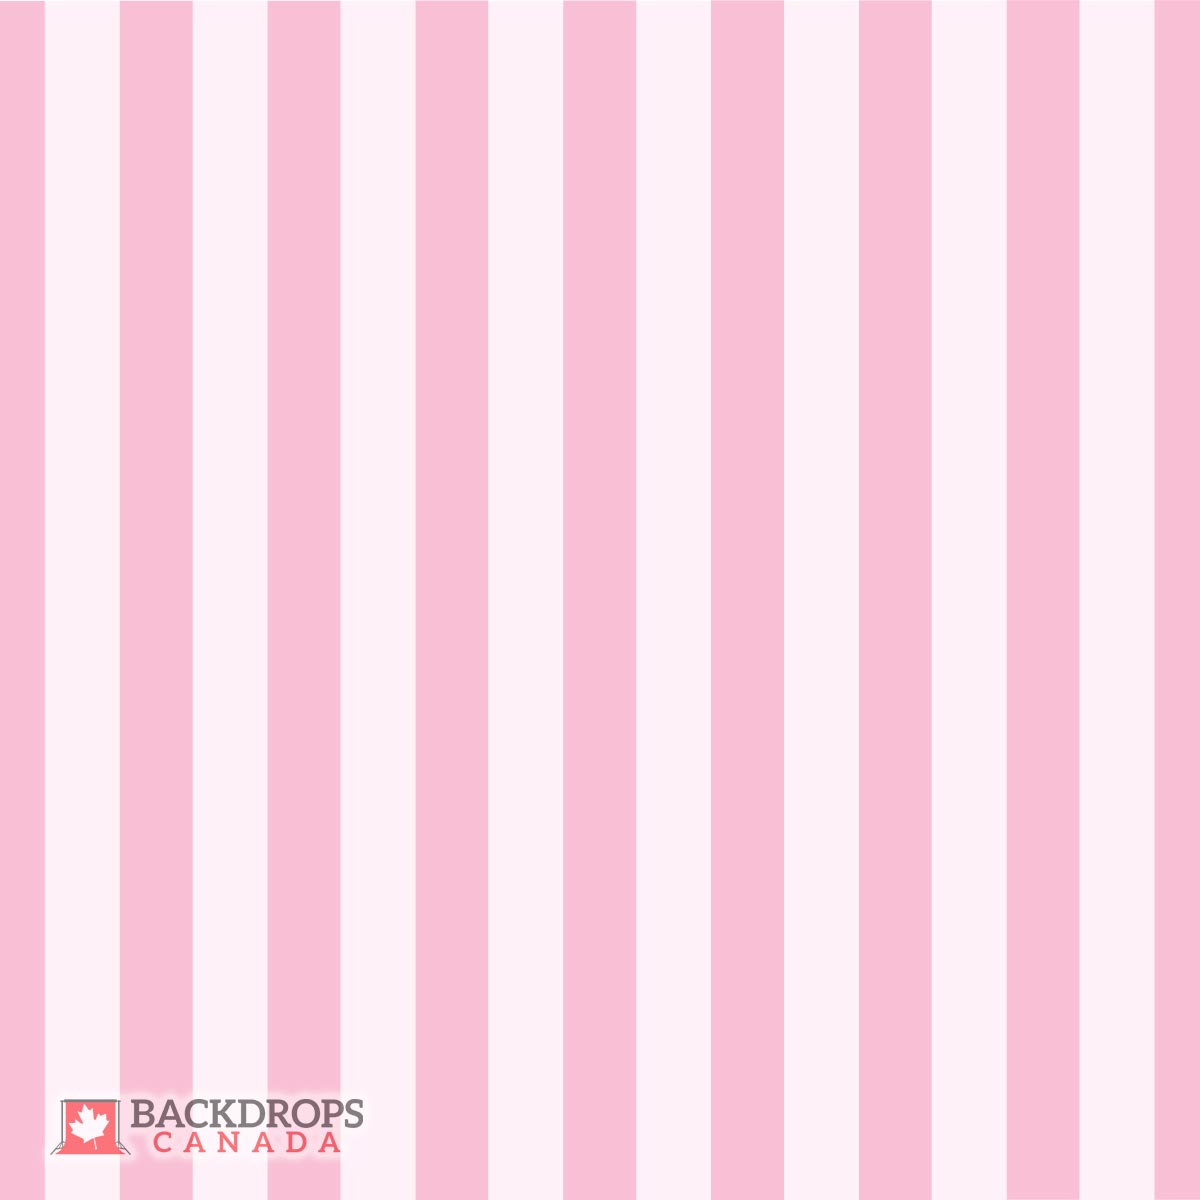 Thick Pink Stripes Backdrops Canada